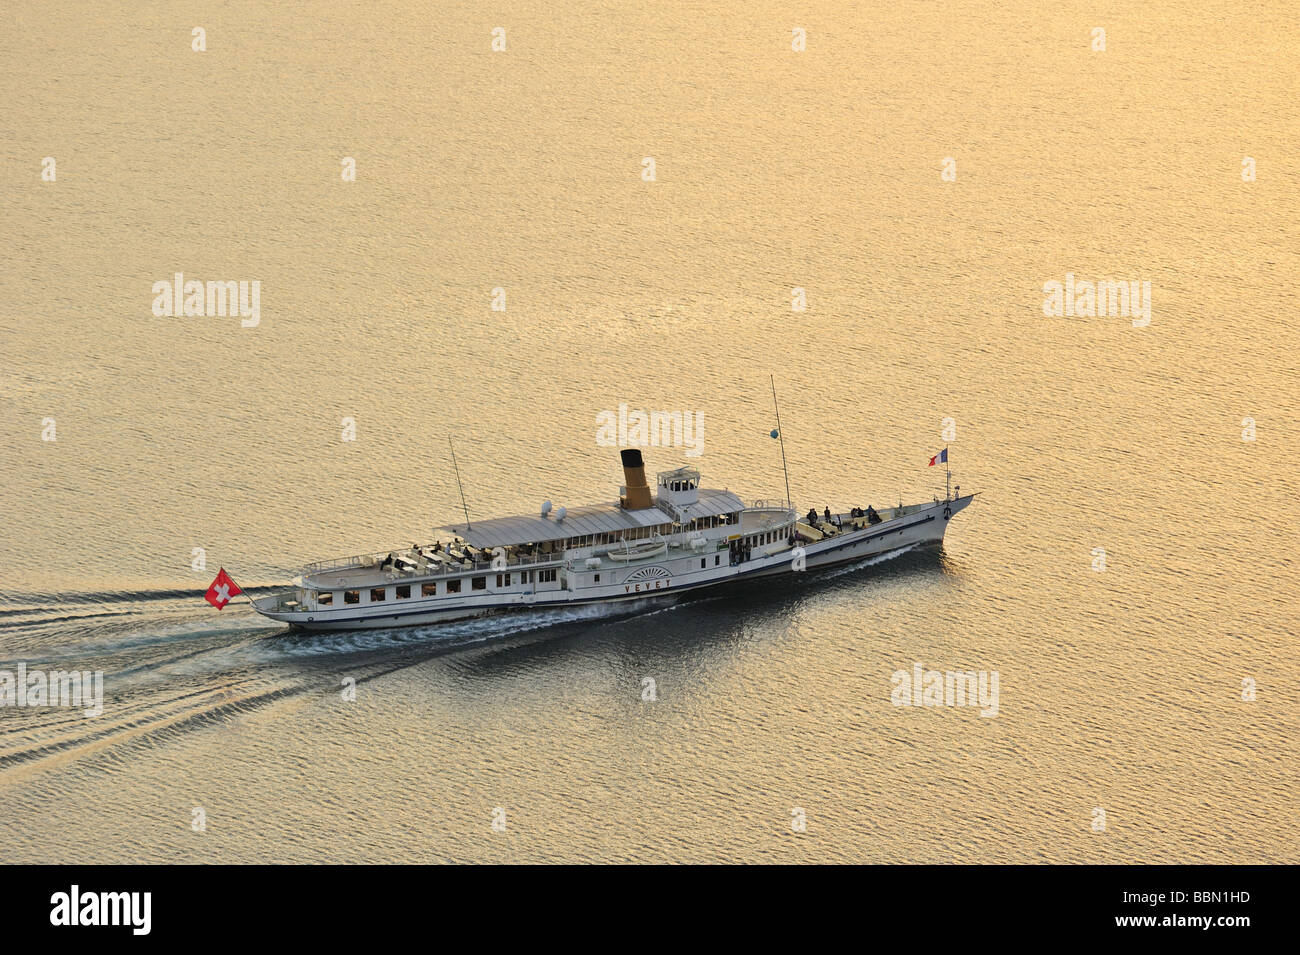 The Swiss paddle steamer 'Vevey' on Lac Leman in the evening. Space for text on the water. - Stock Image